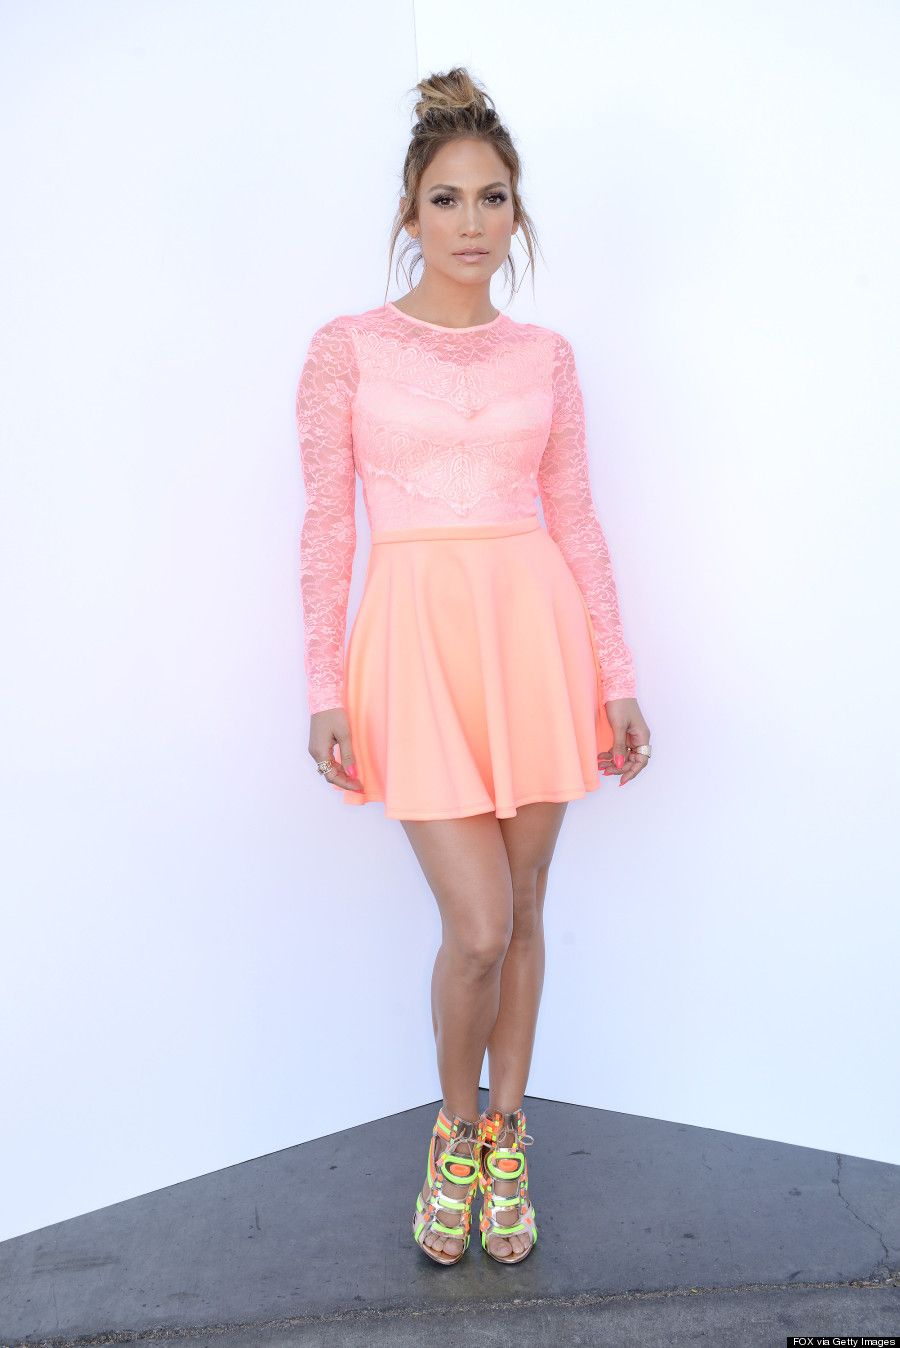 Jennifer Lopez pink neon drees   Oh, look at that! -Fashion   Pinterest